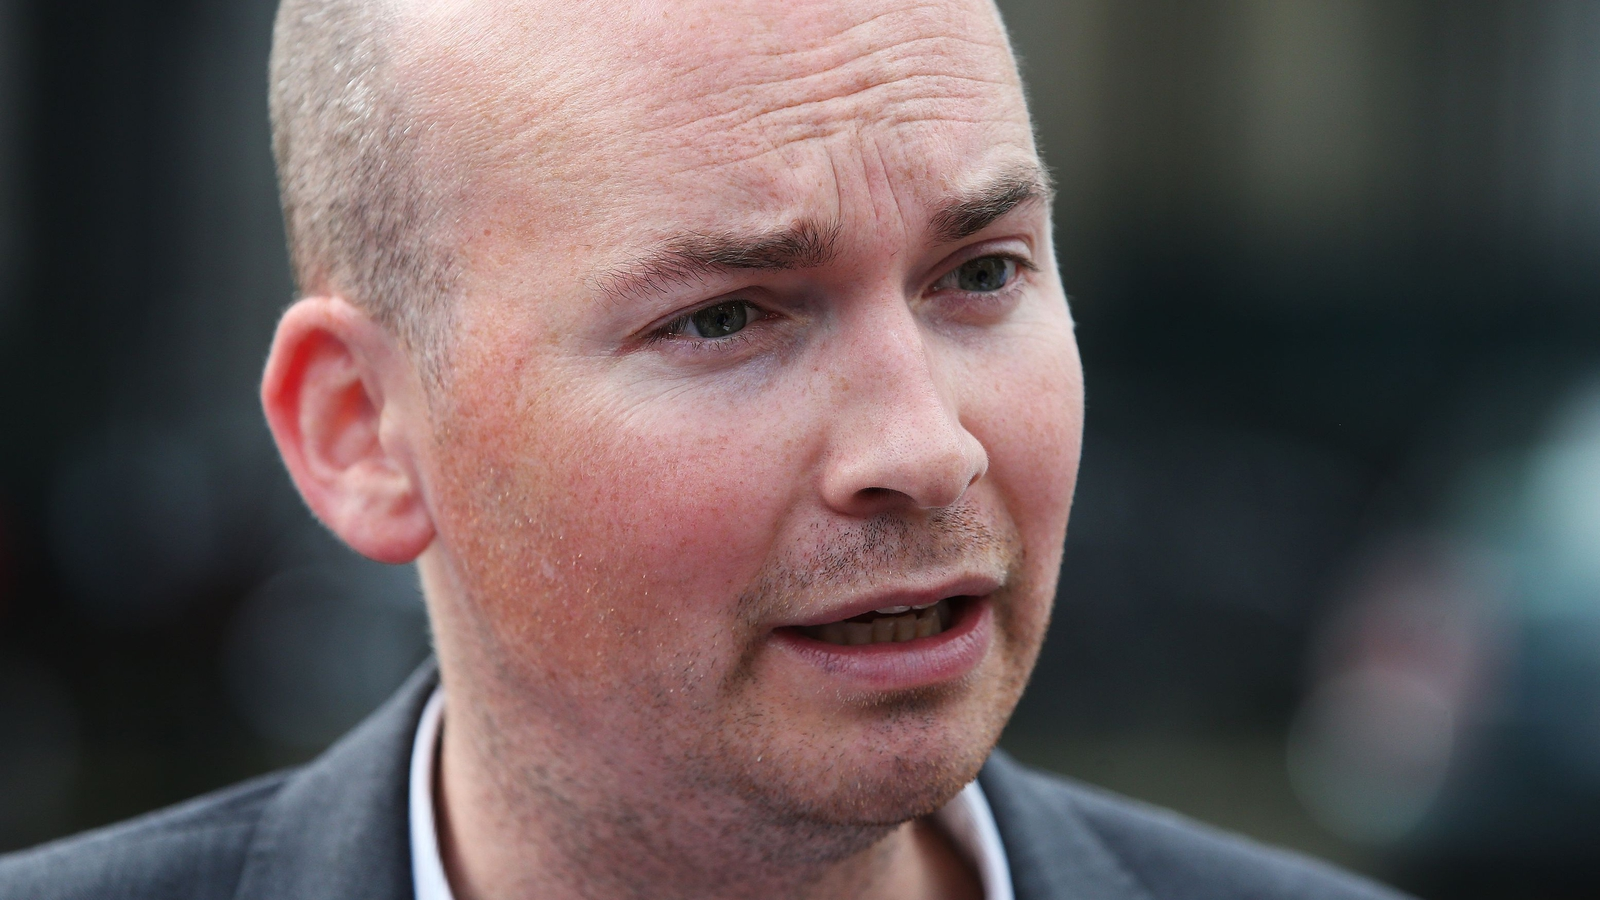 Date set for trial of Paul Murphy over Jobstown protest